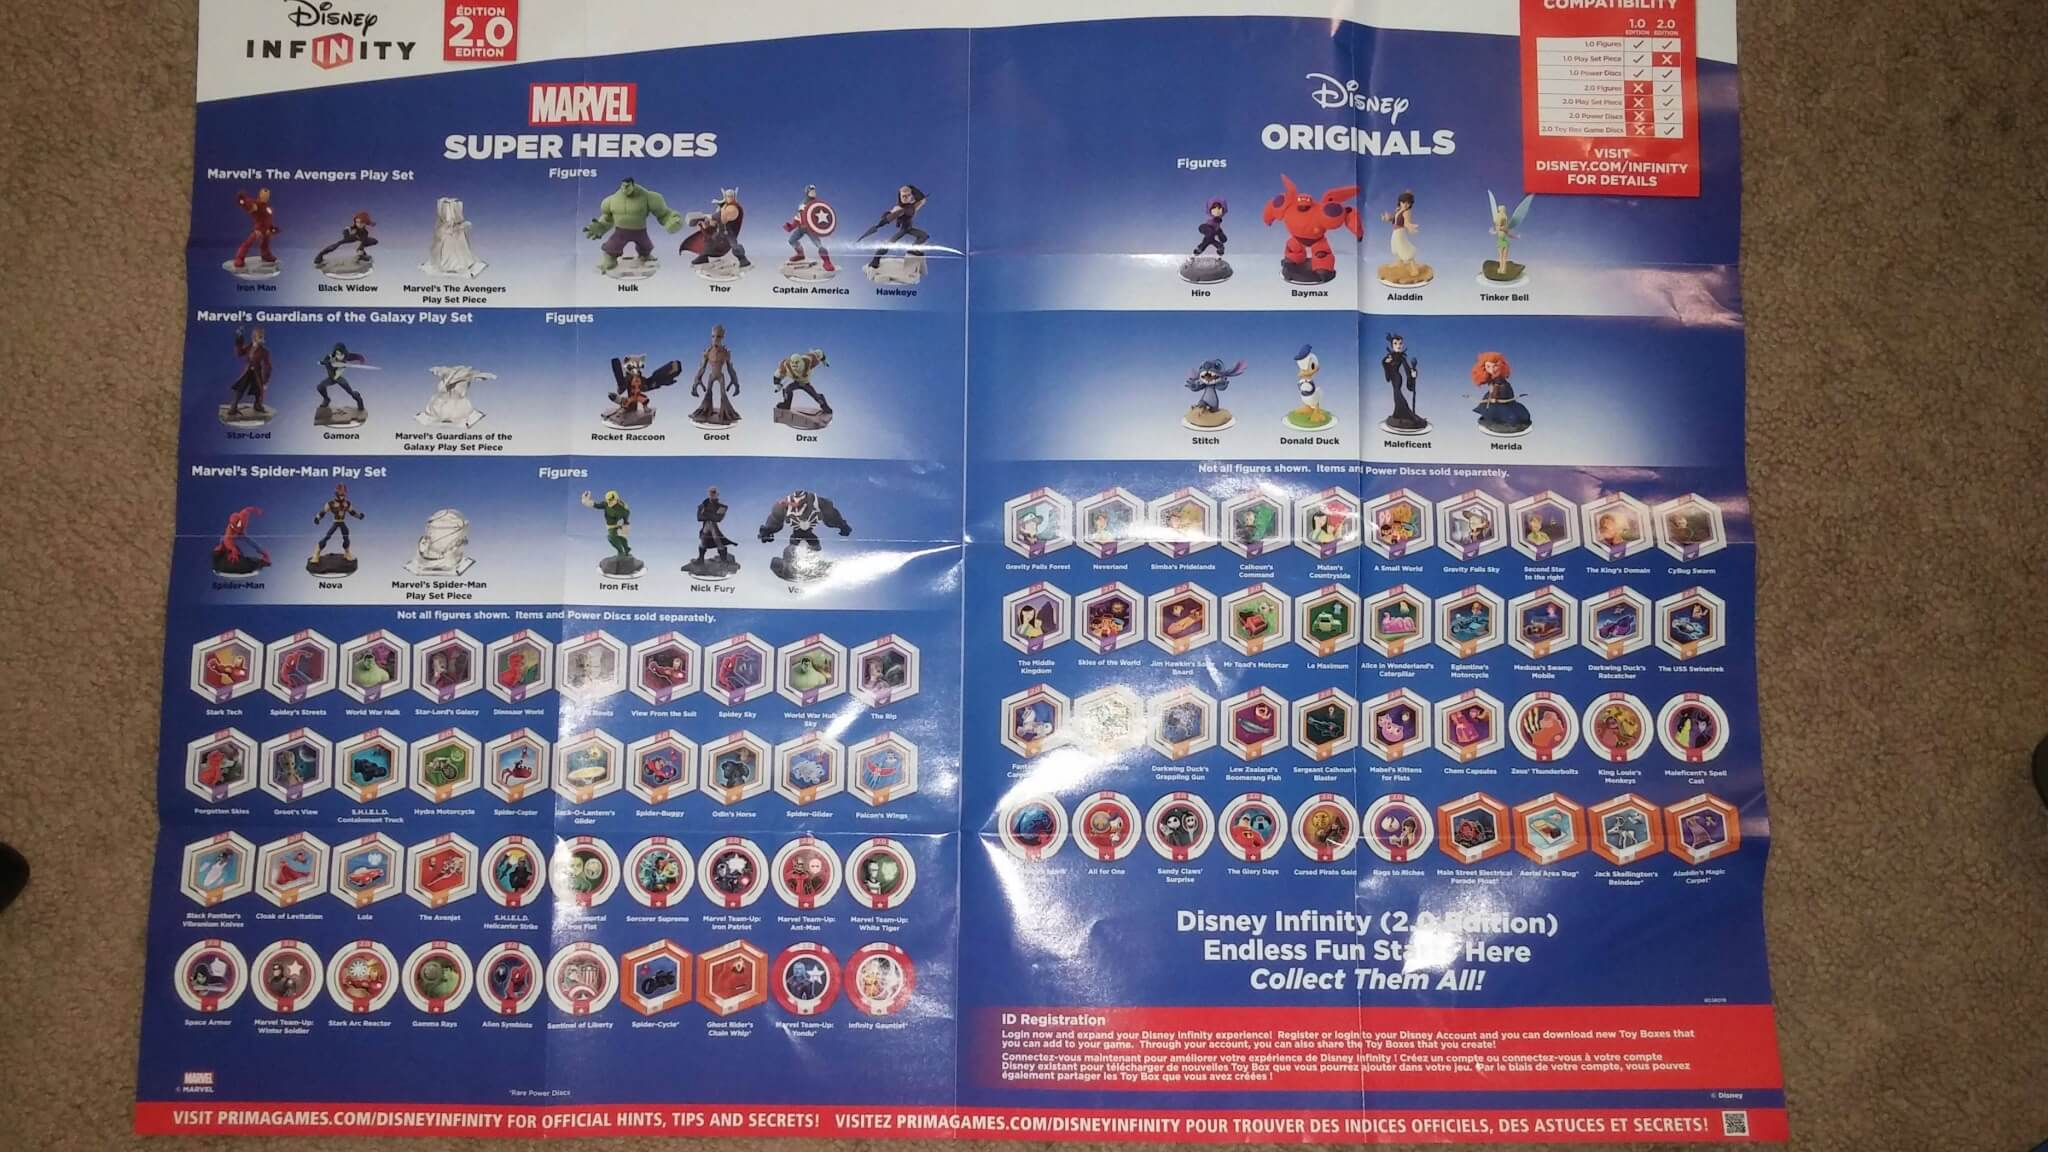 First Look At Poster Included With Disney Infinity 20 Starter Pack